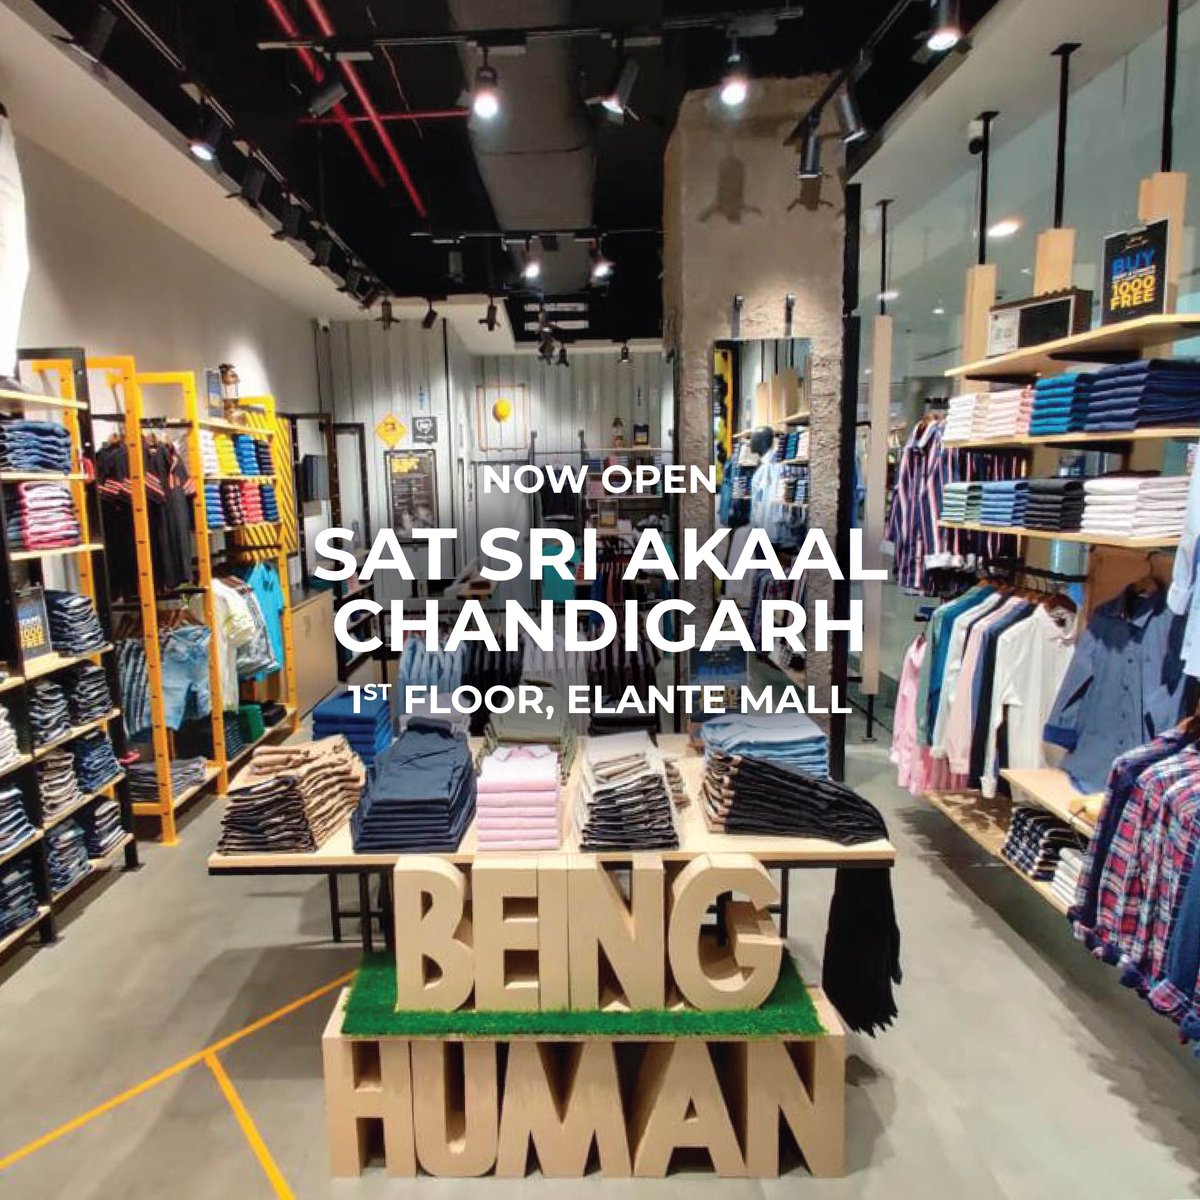 Hello Chandigarh. We are delighted to be back and looking forward to seeing you in the store - 1st Floor, Elante Mall ❤️🤗  #beinghumanclothing #lovecareshare #beinghuman